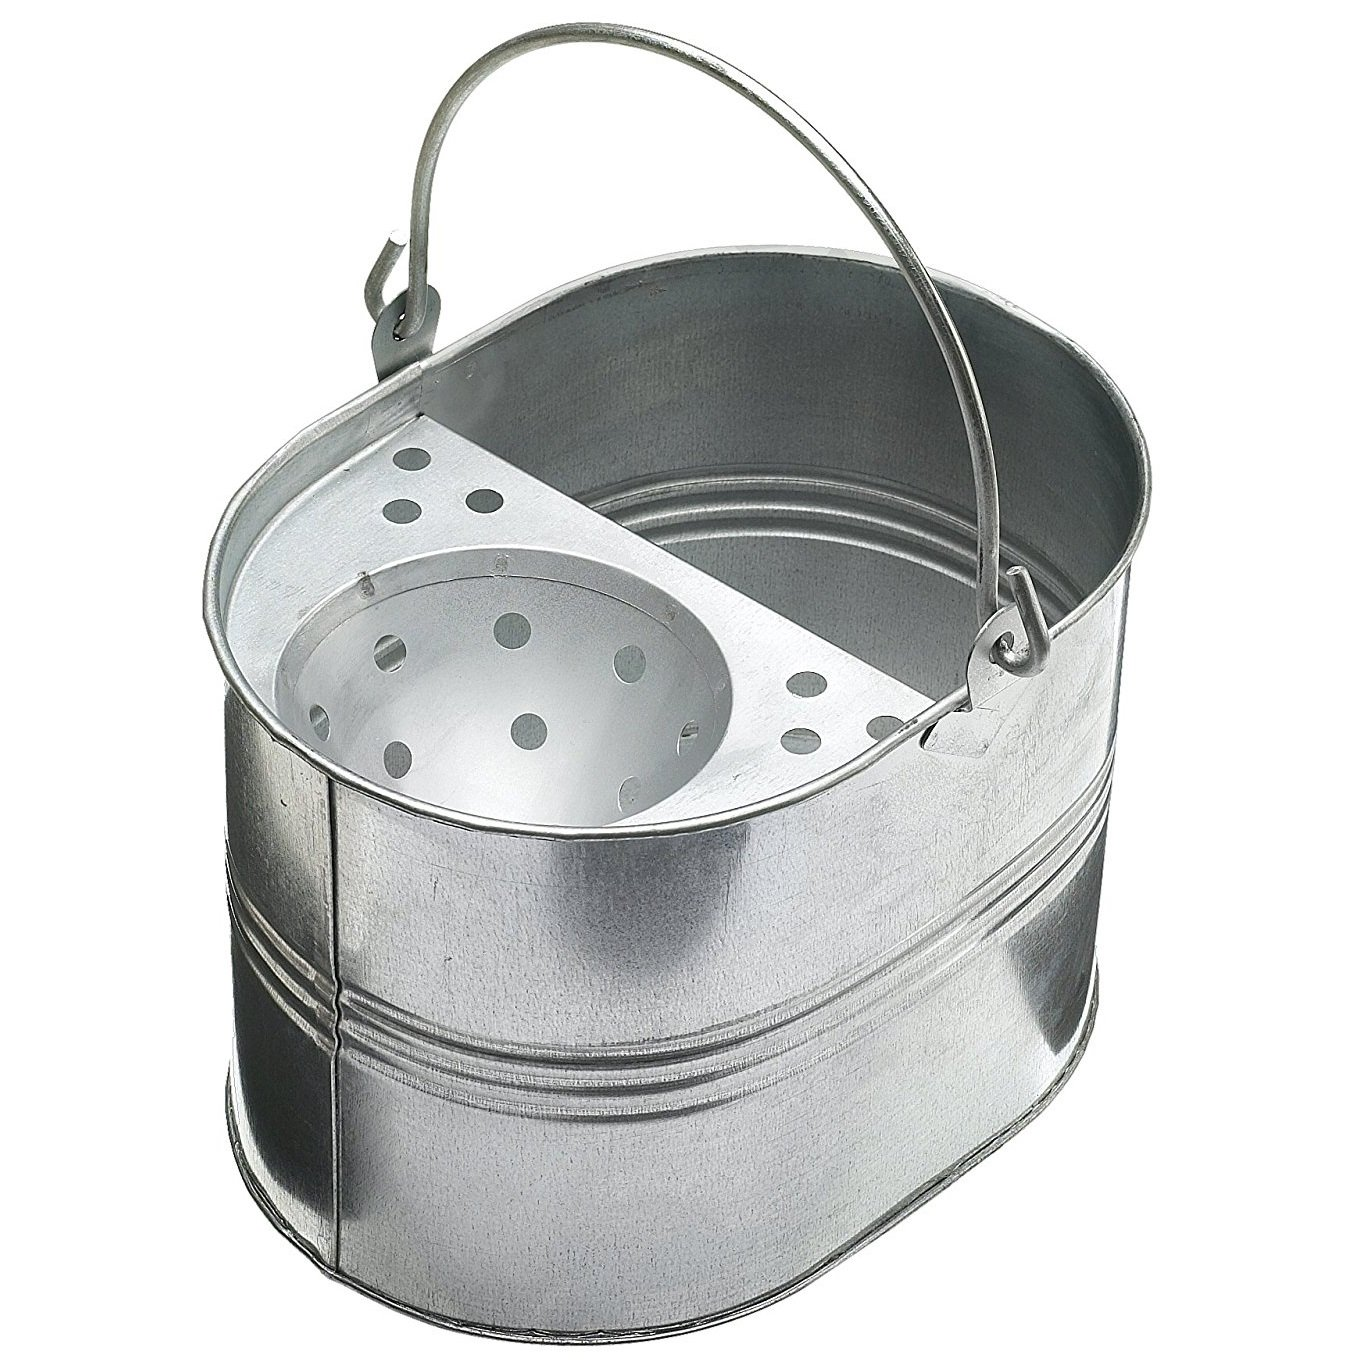 15L 15 Litres Large Galvanised Metal Steel Mop Bucket with Handle for Home Office General Cleaning UK